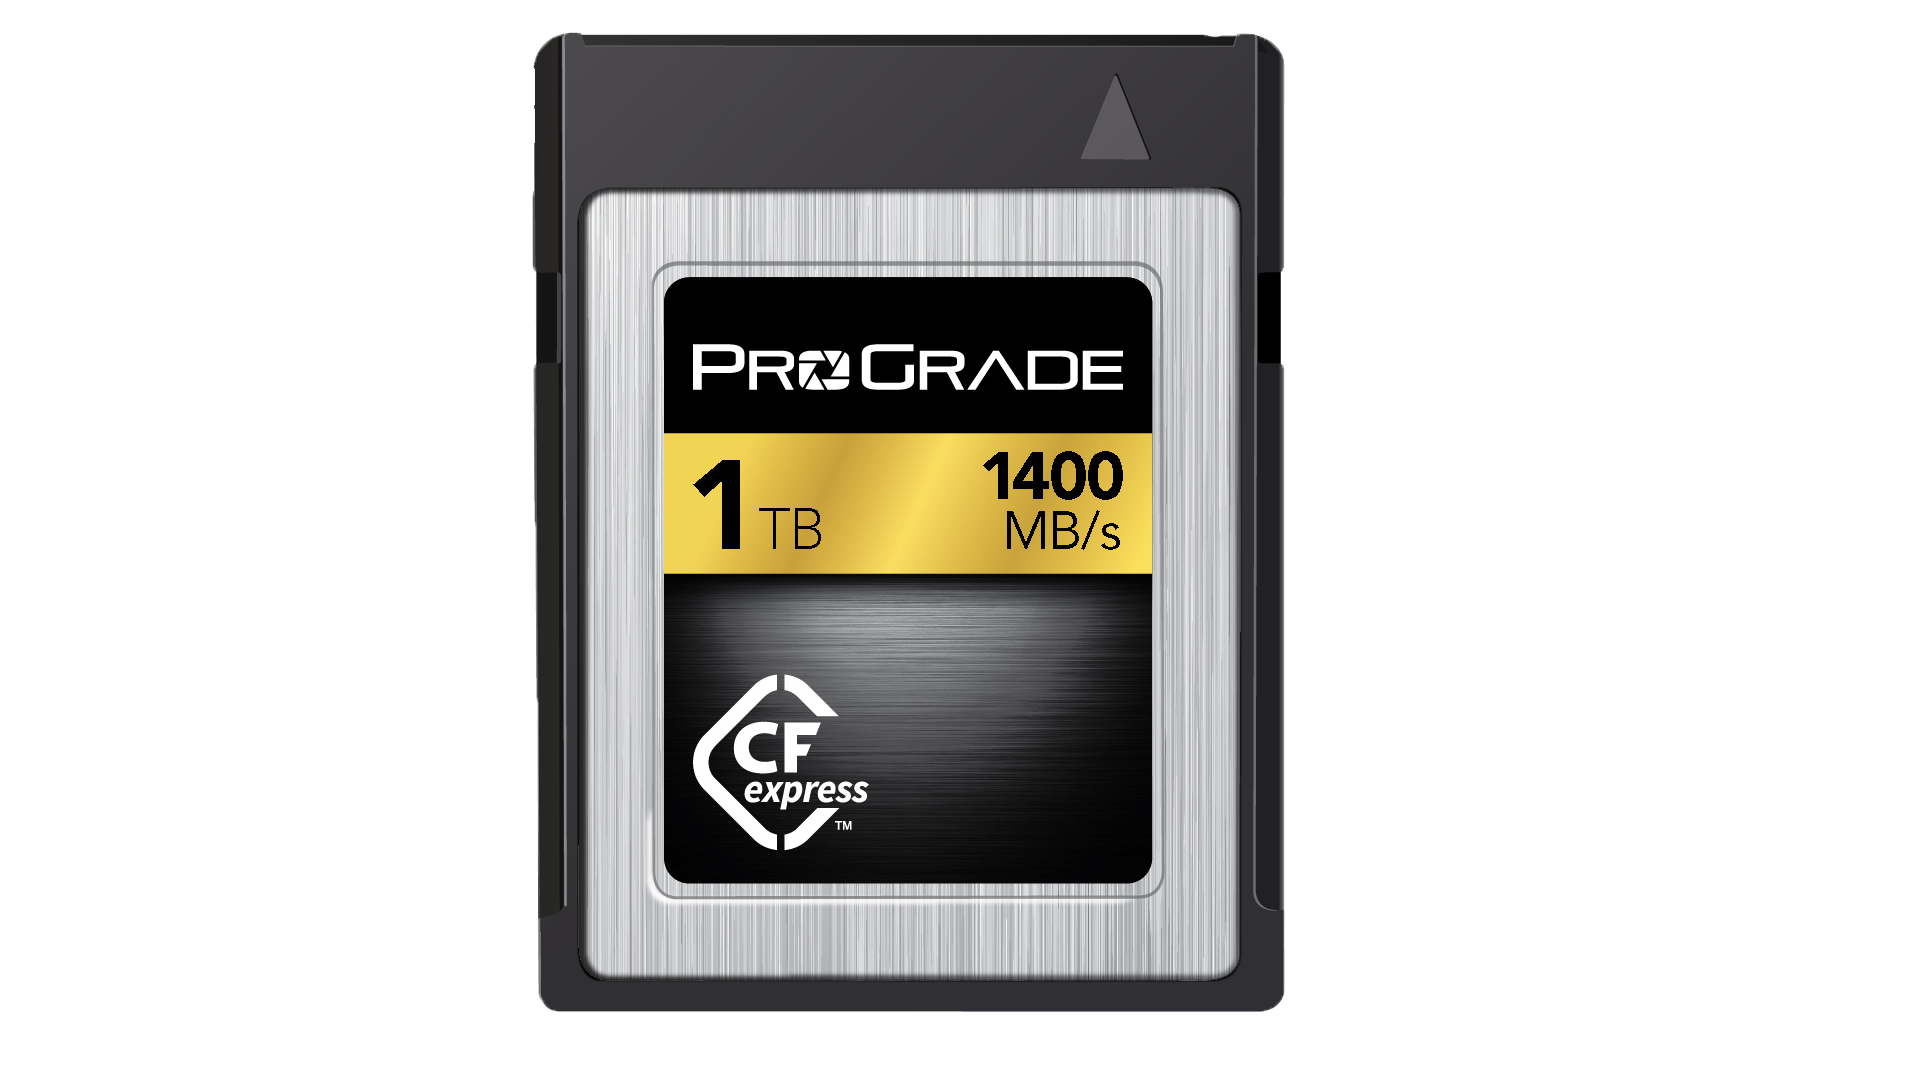 CFexpress_Card_1TB_flat_render_1400MBs.png